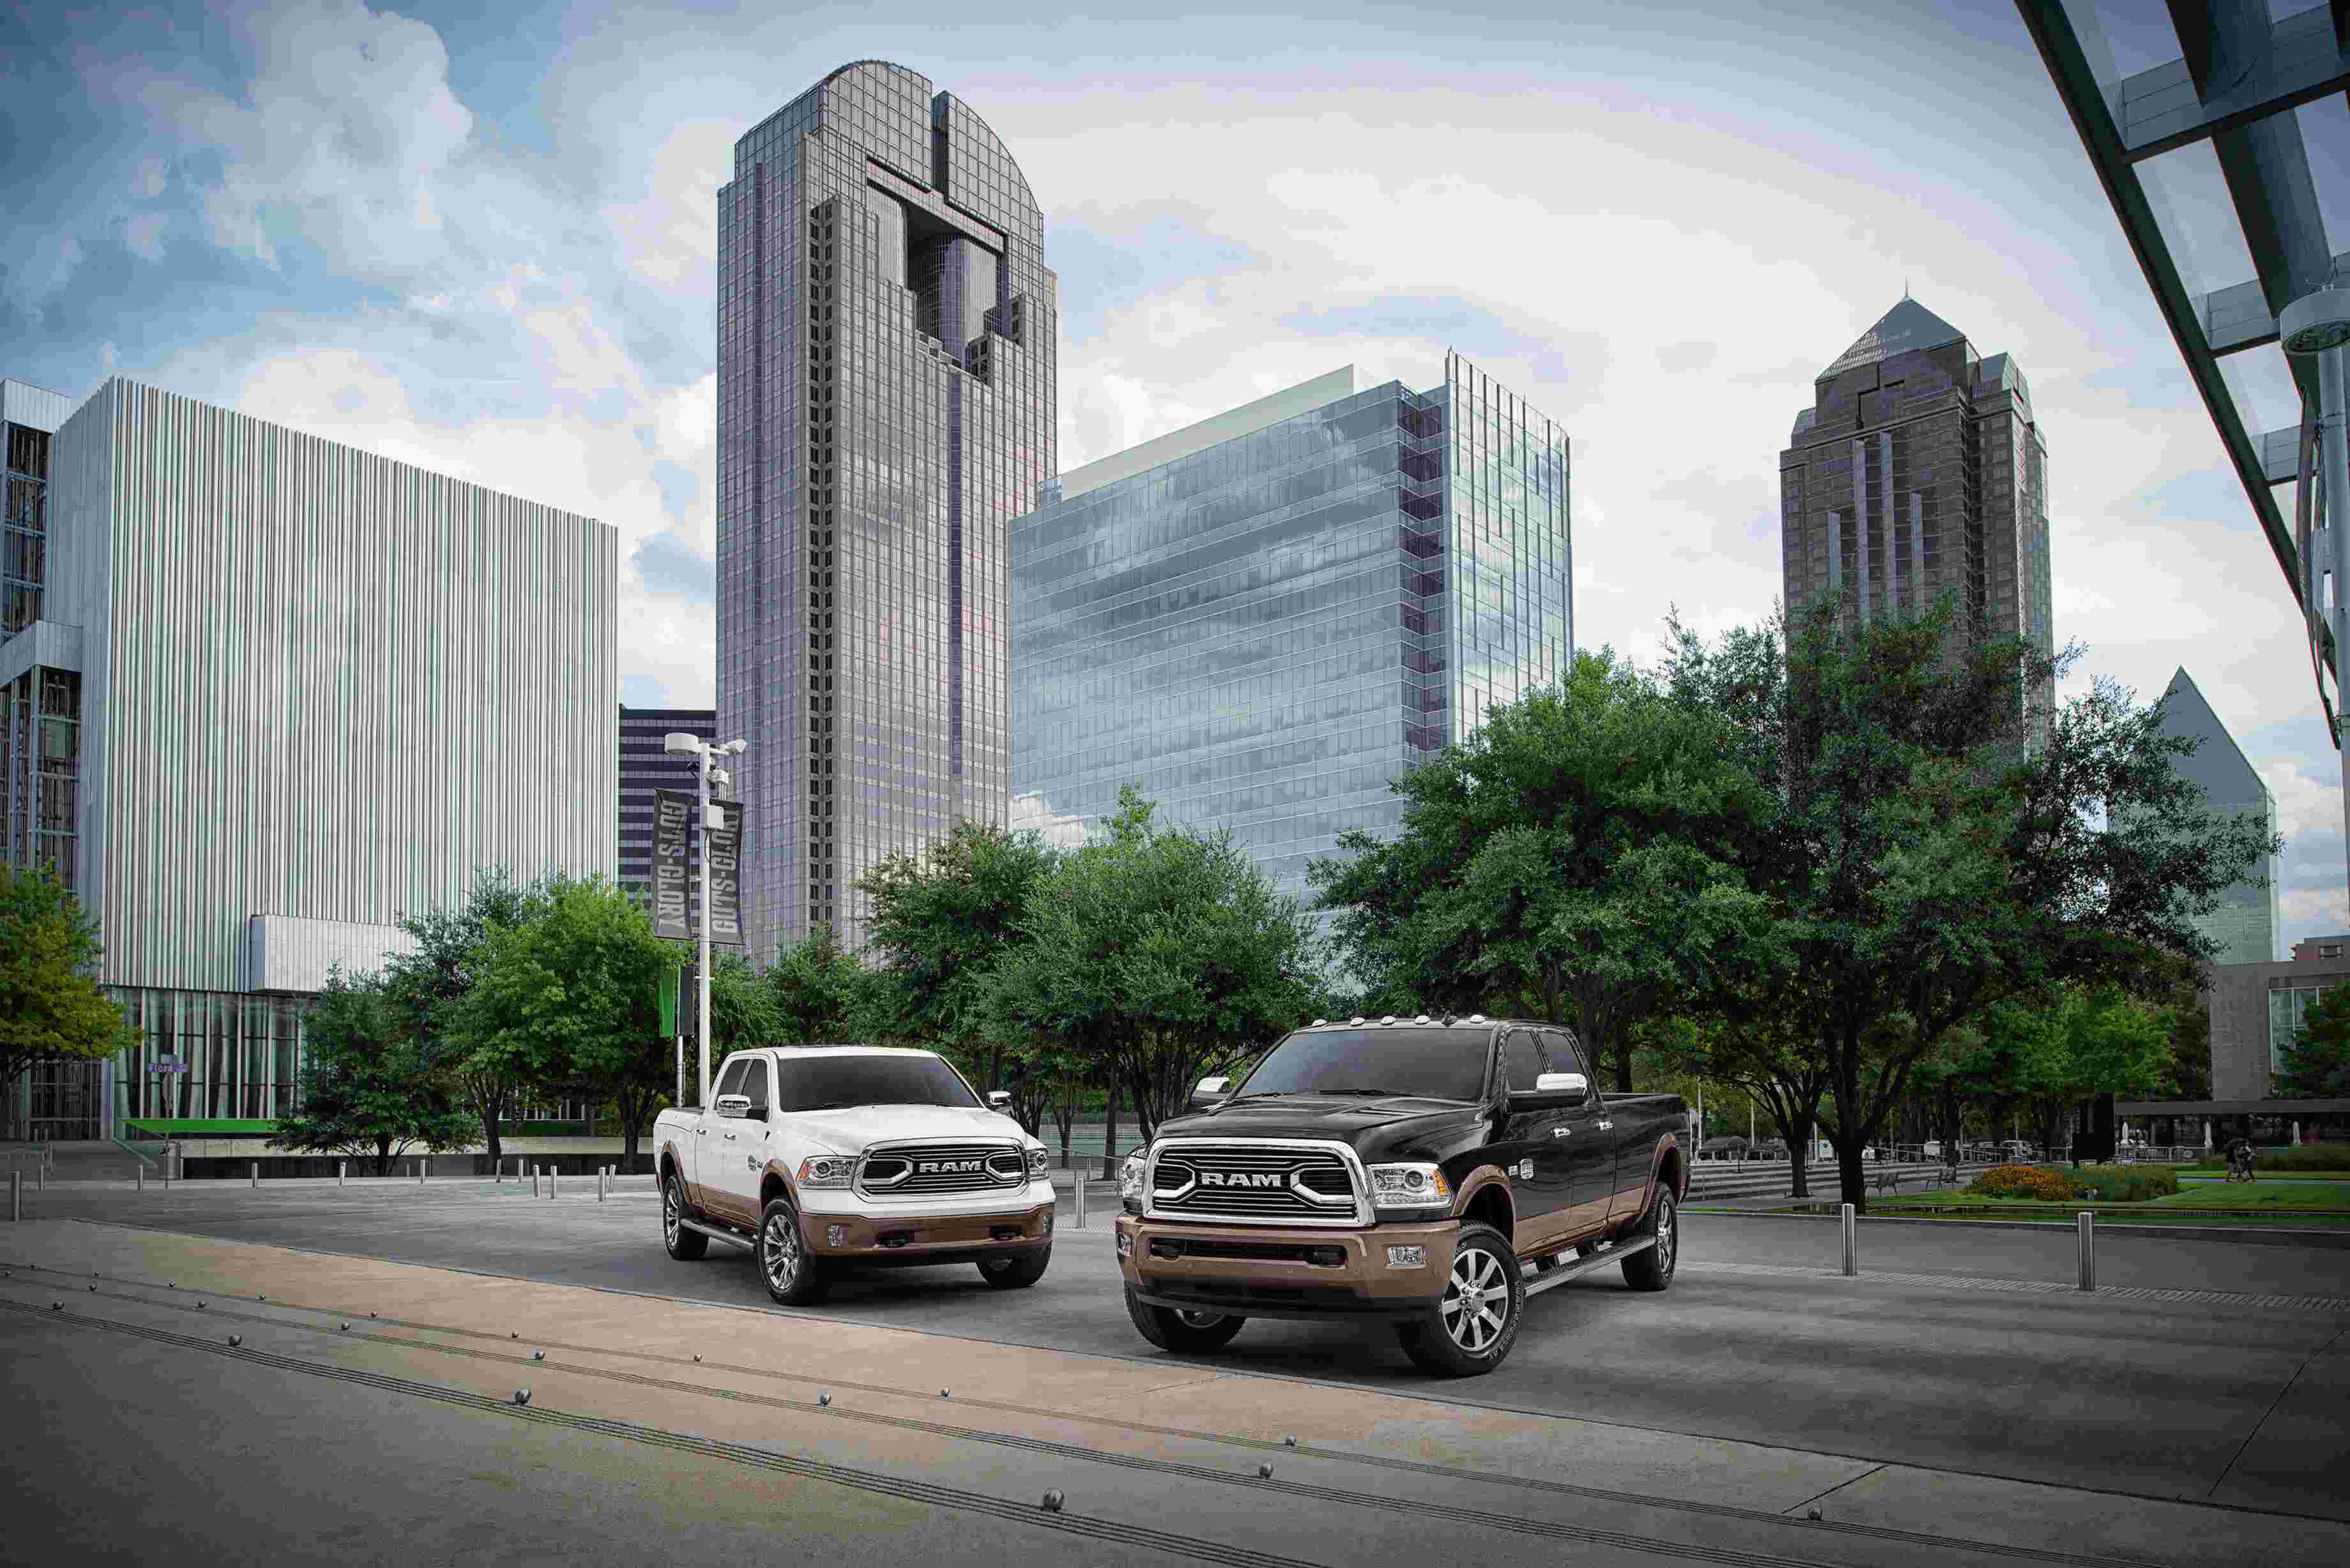 Ram recall: defective cruise control may cause vehicle